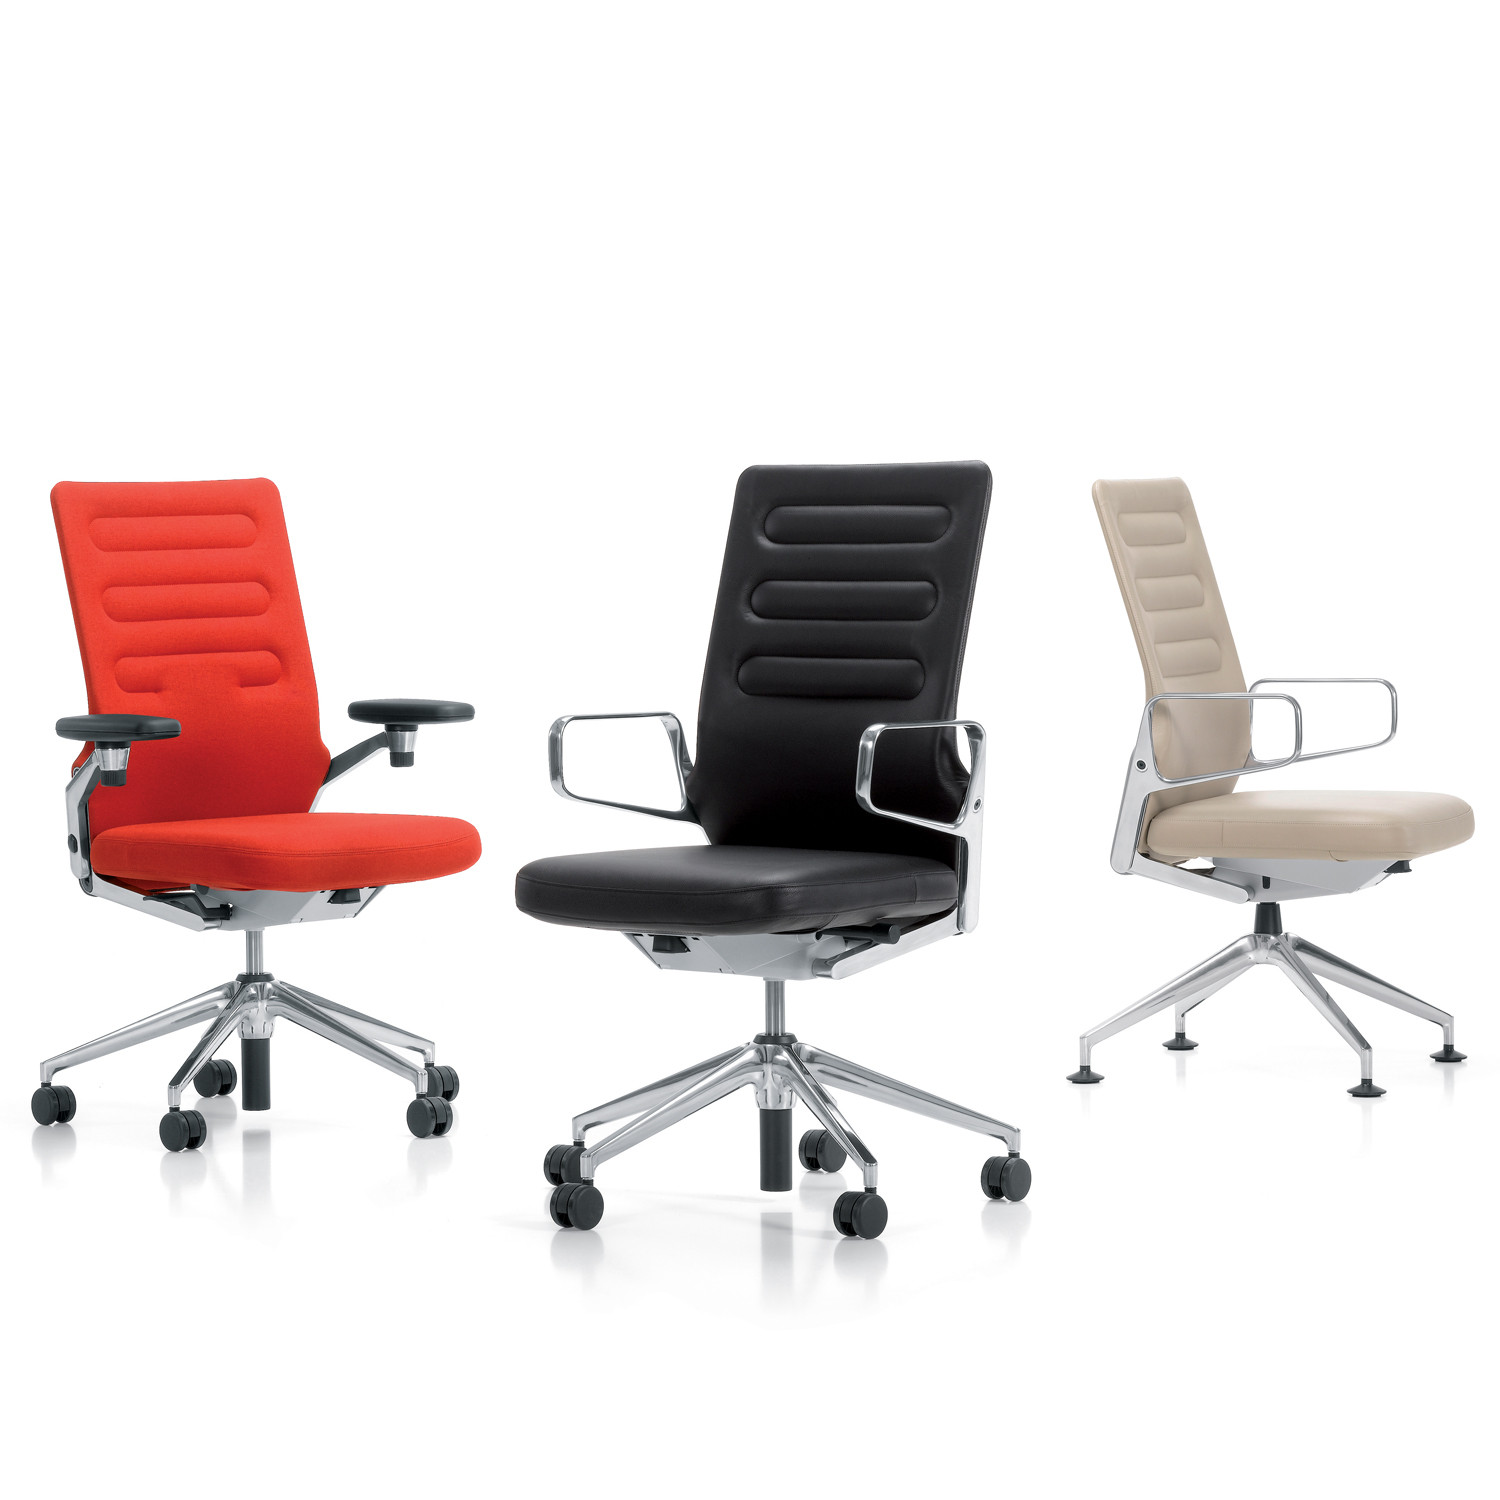 AC 4 Office Chairs by Antonio Citterio